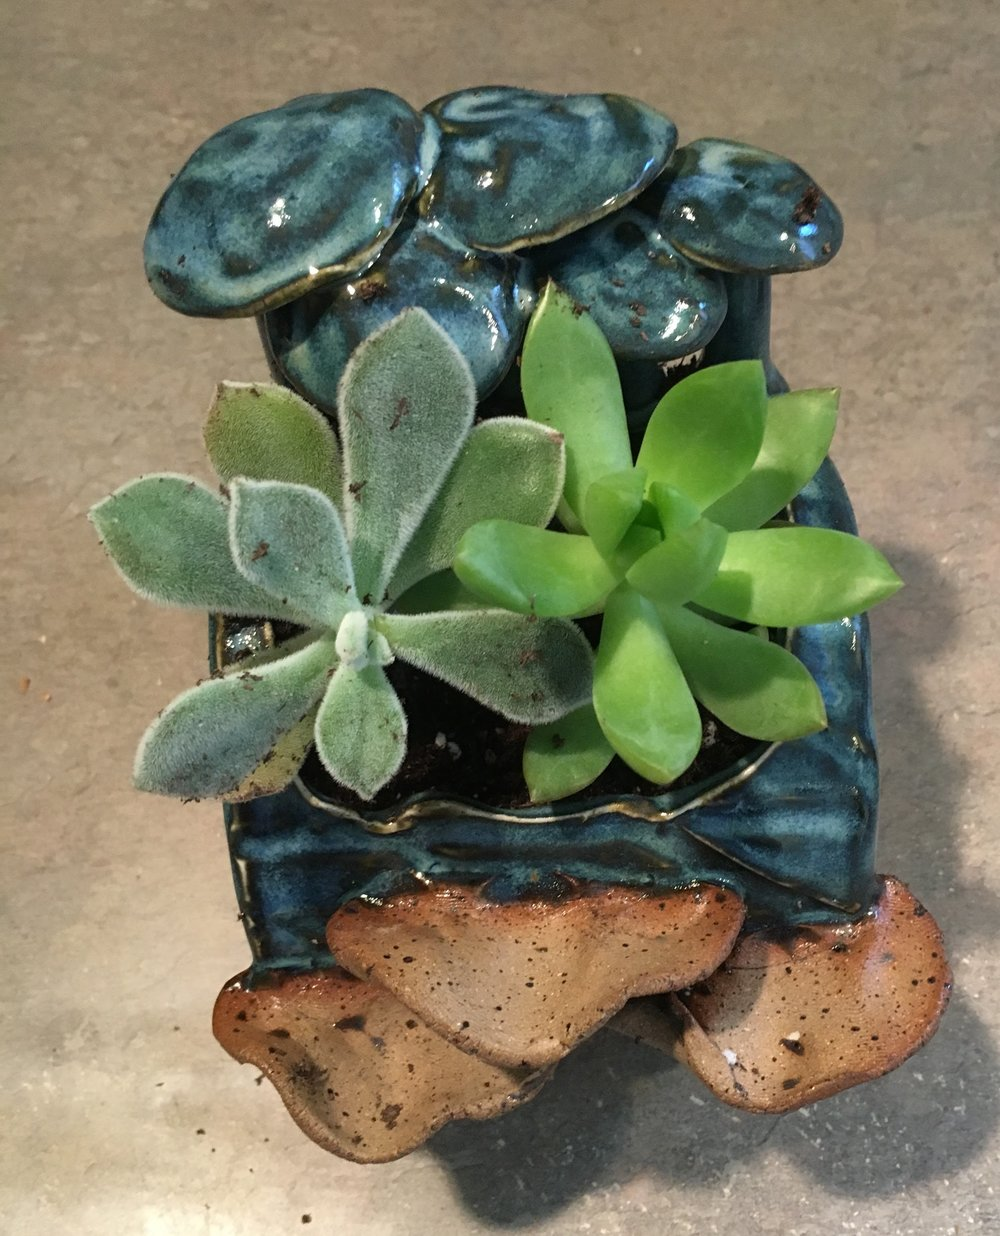 Introducing - My Succulents